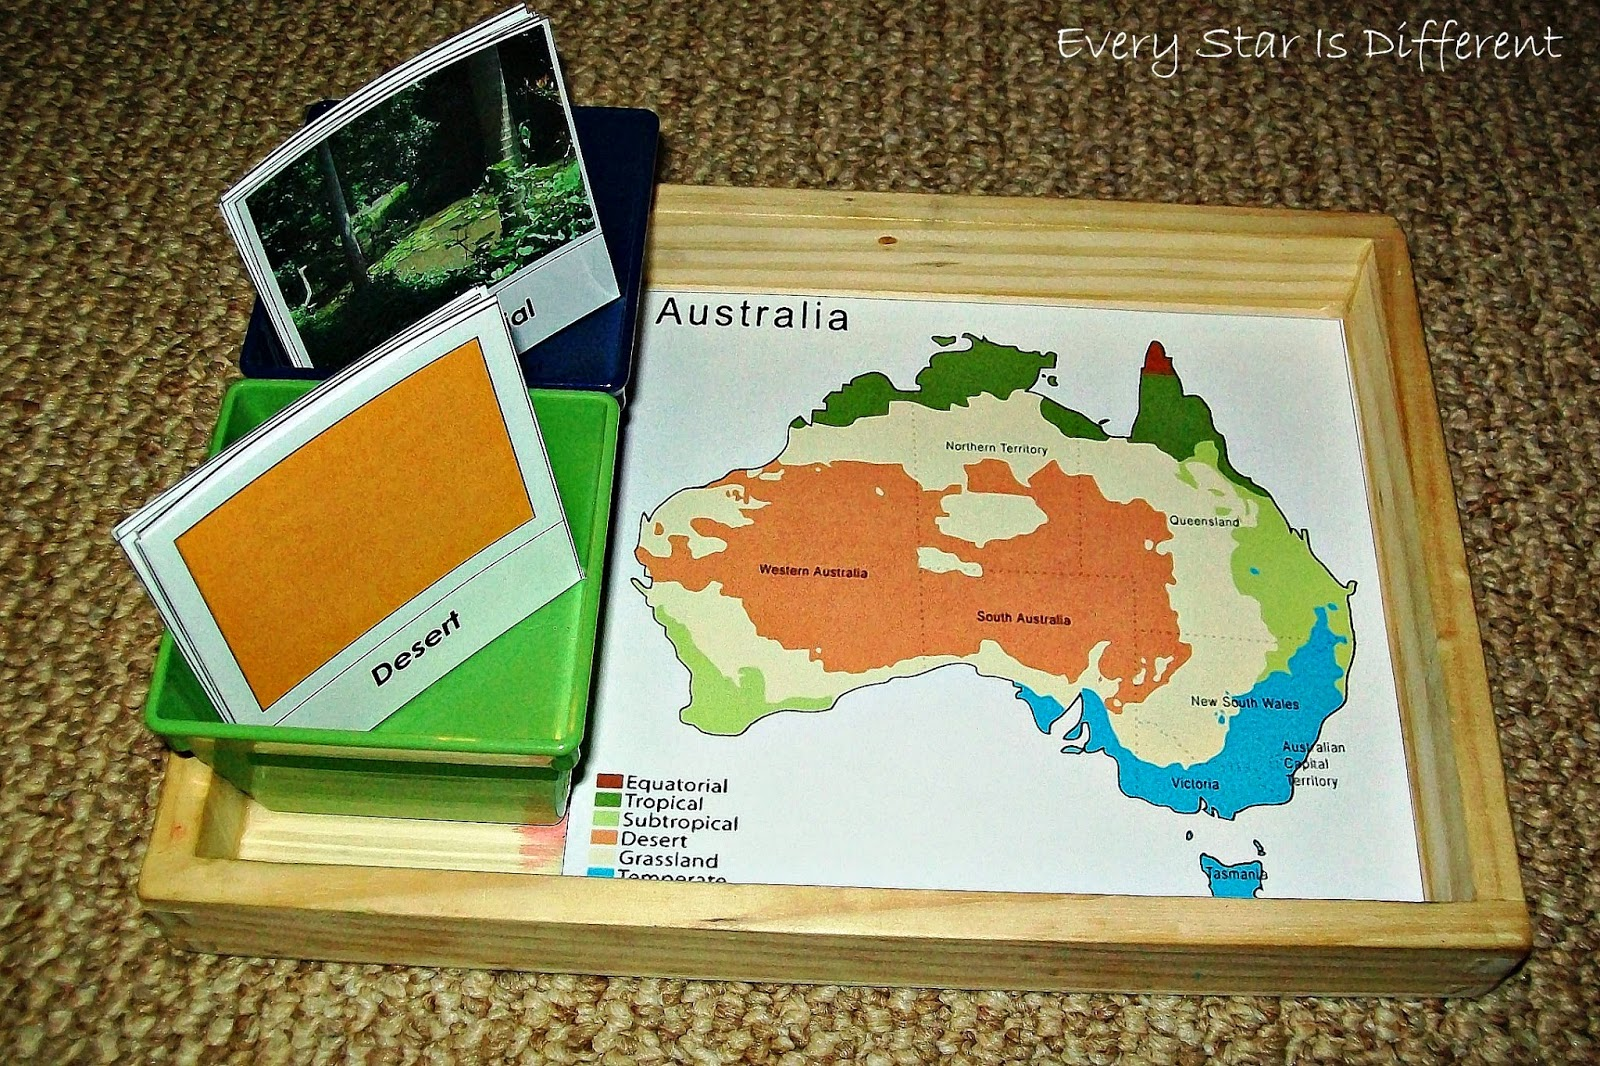 Australia Climate Zones Activity (Free Printable)